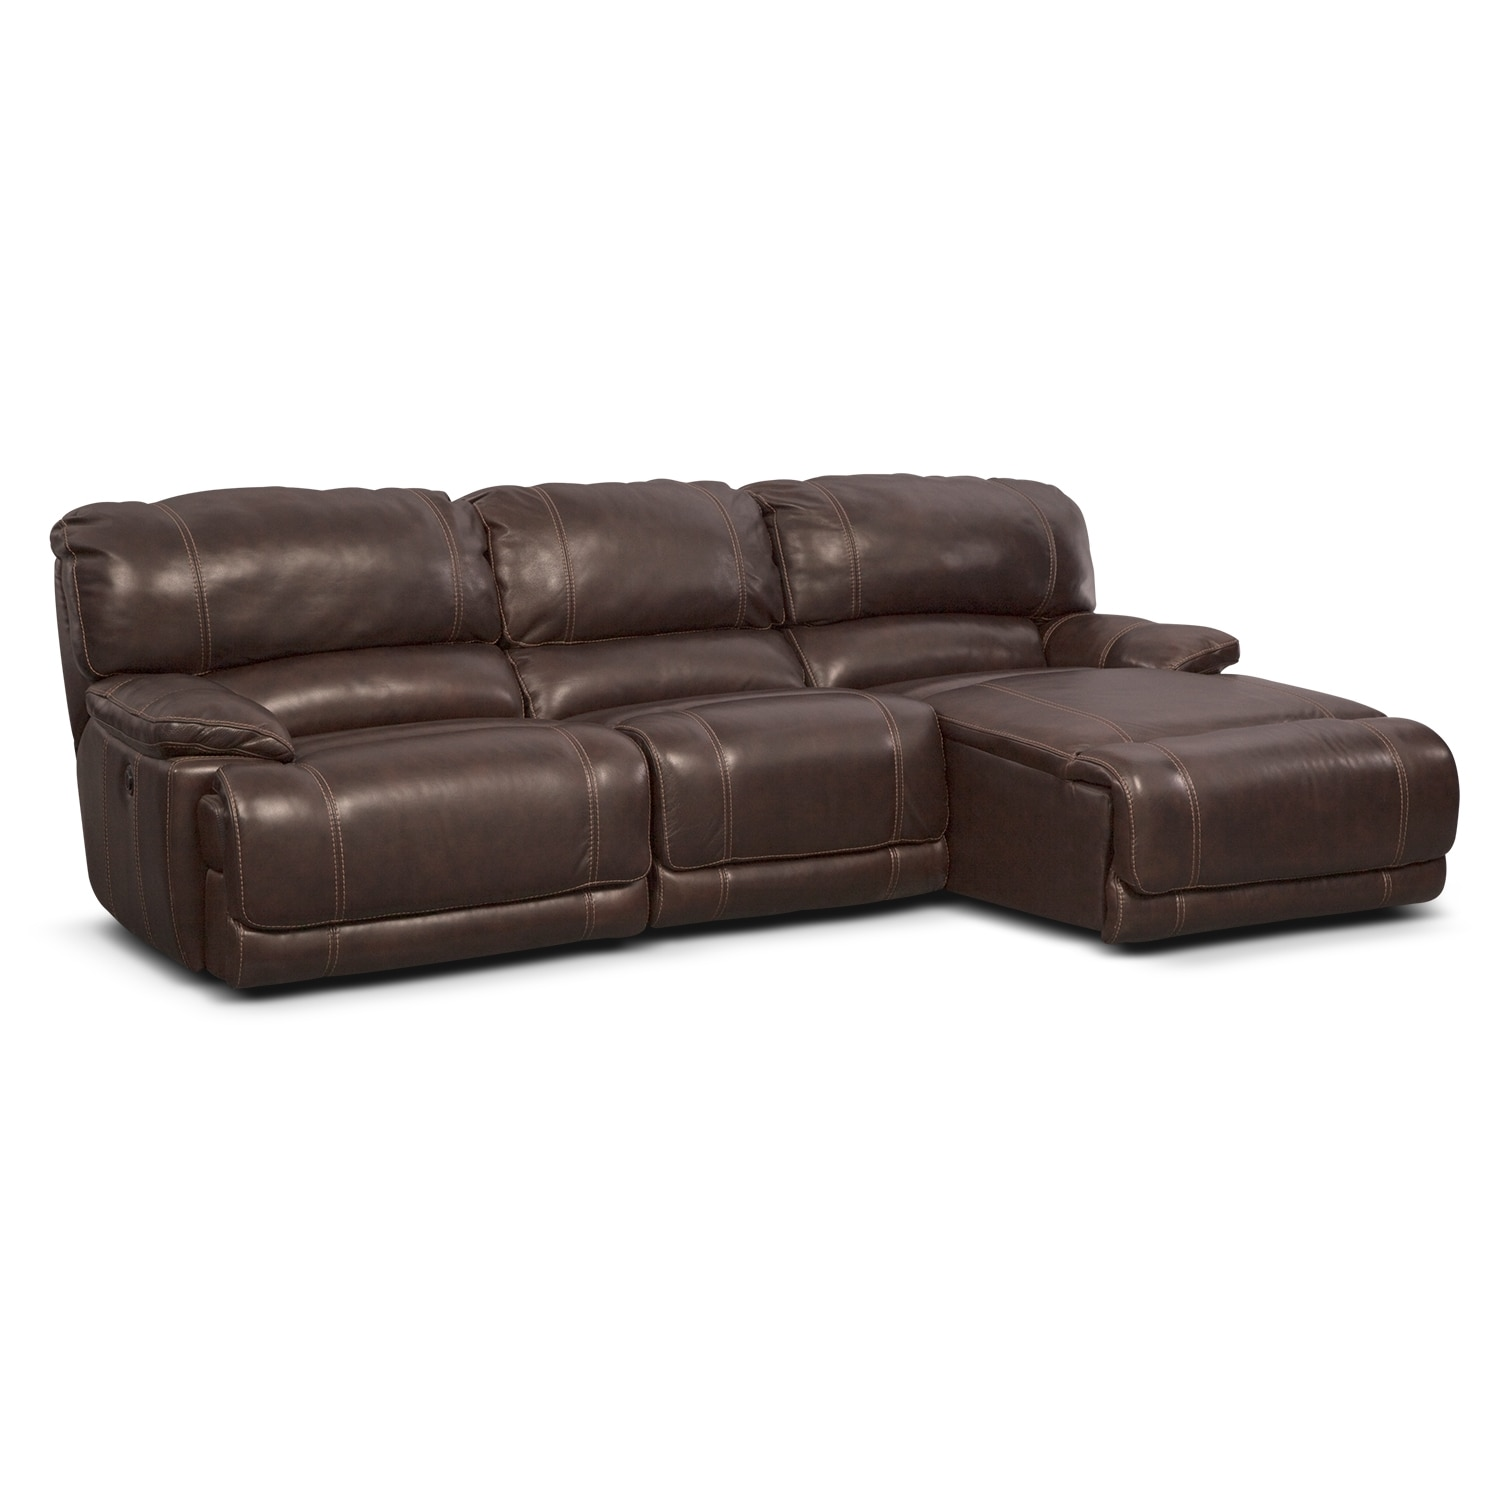 St malo 3 piece power reclining sectional with right for Brown sectional sofa with chaise